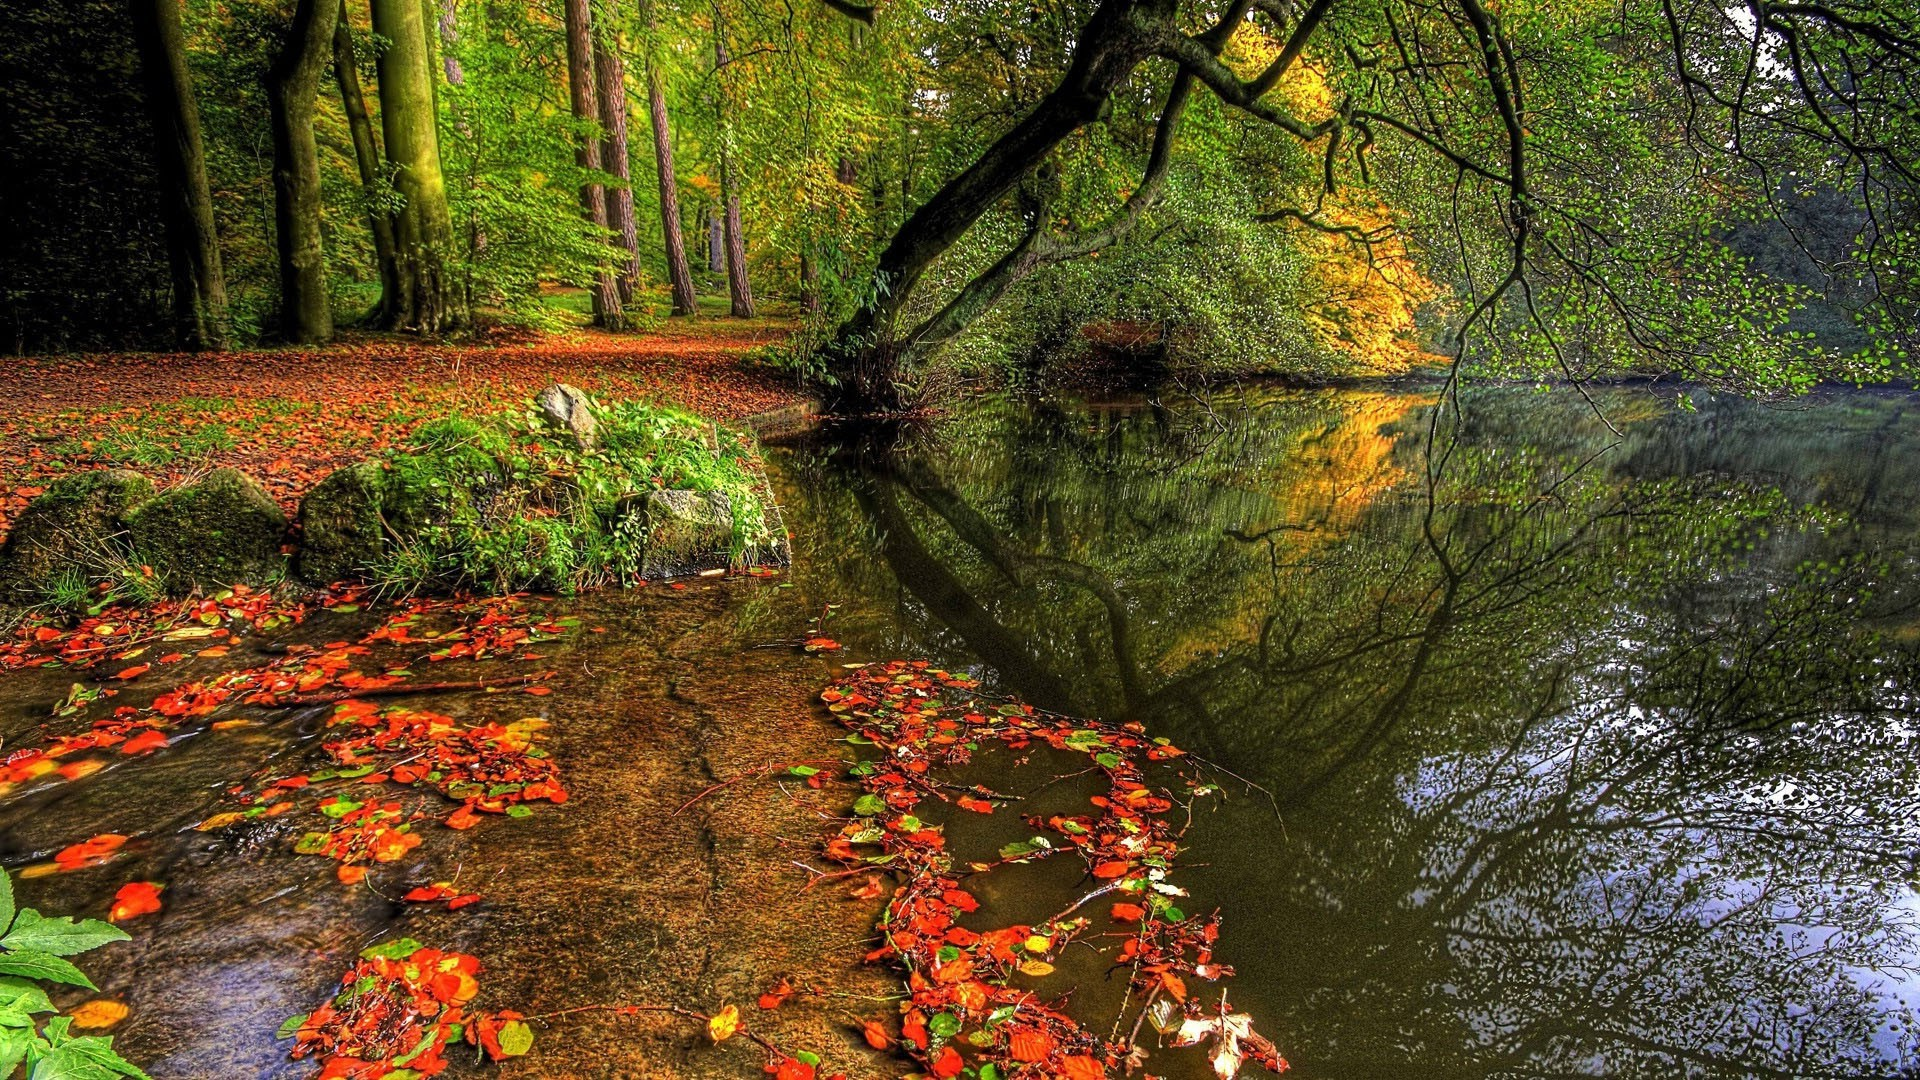 Free Computer Wallpaper Fall Leaves Pond In Autumn In The Woods Android Wallpapers For Free